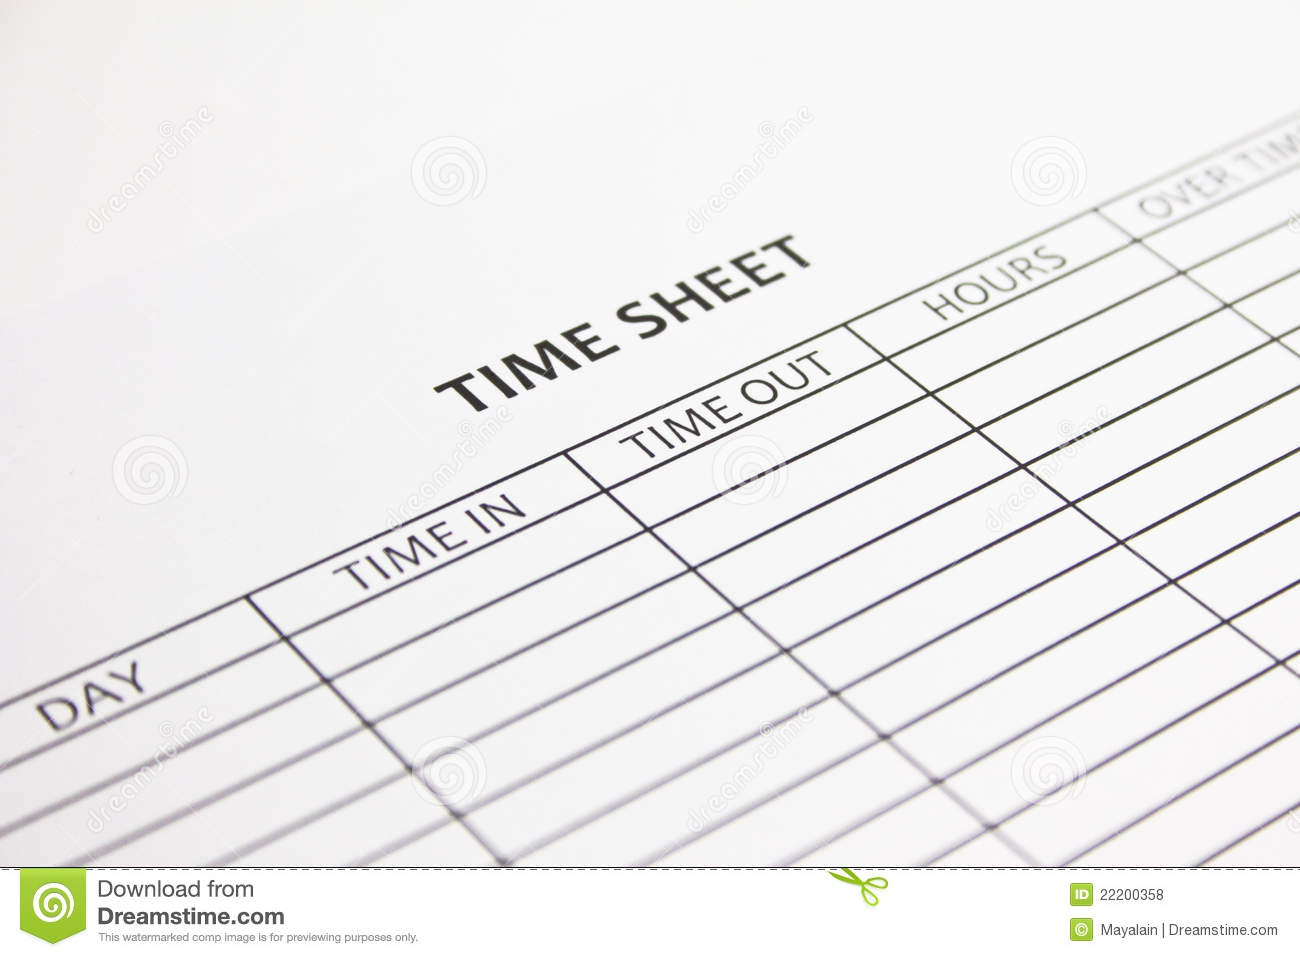 Daily Time Sheet Form Samplewords Forms Documents Time Sheet Royalty Free Stock Photos Image 22200358